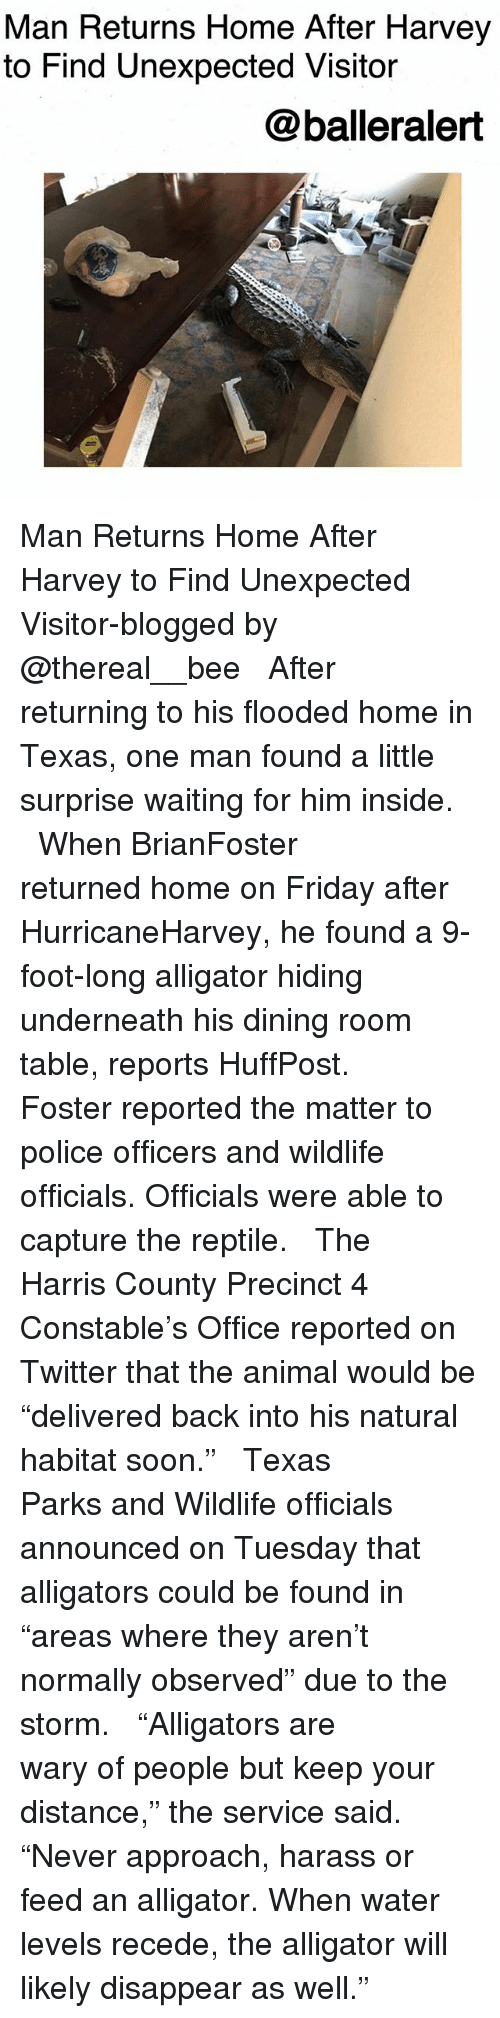 "Friday, Memes, and Police: Man Returns Home After Harvey  to Find Unexpected Visitor  @balleralert Man Returns Home After Harvey to Find Unexpected Visitor-blogged by @thereal__bee ⠀⠀⠀⠀⠀⠀⠀⠀⠀ ⠀⠀ After returning to his flooded home in Texas, one man found a little surprise waiting for him inside. ⠀⠀⠀⠀⠀⠀⠀⠀⠀ ⠀⠀ When BrianFoster returned home on Friday after HurricaneHarvey, he found a 9-foot-long alligator hiding underneath his dining room table, reports HuffPost. ⠀⠀⠀⠀⠀⠀⠀⠀⠀ ⠀⠀ Foster reported the matter to police officers and wildlife officials. Officials were able to capture the reptile. ⠀⠀⠀⠀⠀⠀⠀⠀⠀ ⠀⠀ The Harris County Precinct 4 Constable's Office reported on Twitter that the animal would be ""delivered back into his natural habitat soon."" ⠀⠀⠀⠀⠀⠀⠀⠀⠀ ⠀⠀ Texas Parks and Wildlife officials announced on Tuesday that alligators could be found in ""areas where they aren't normally observed"" due to the storm. ⠀⠀⠀⠀⠀⠀⠀⠀⠀ ⠀⠀ ""Alligators are wary of people but keep your distance,"" the service said. ""Never approach, harass or feed an alligator. When water levels recede, the alligator will likely disappear as well."""